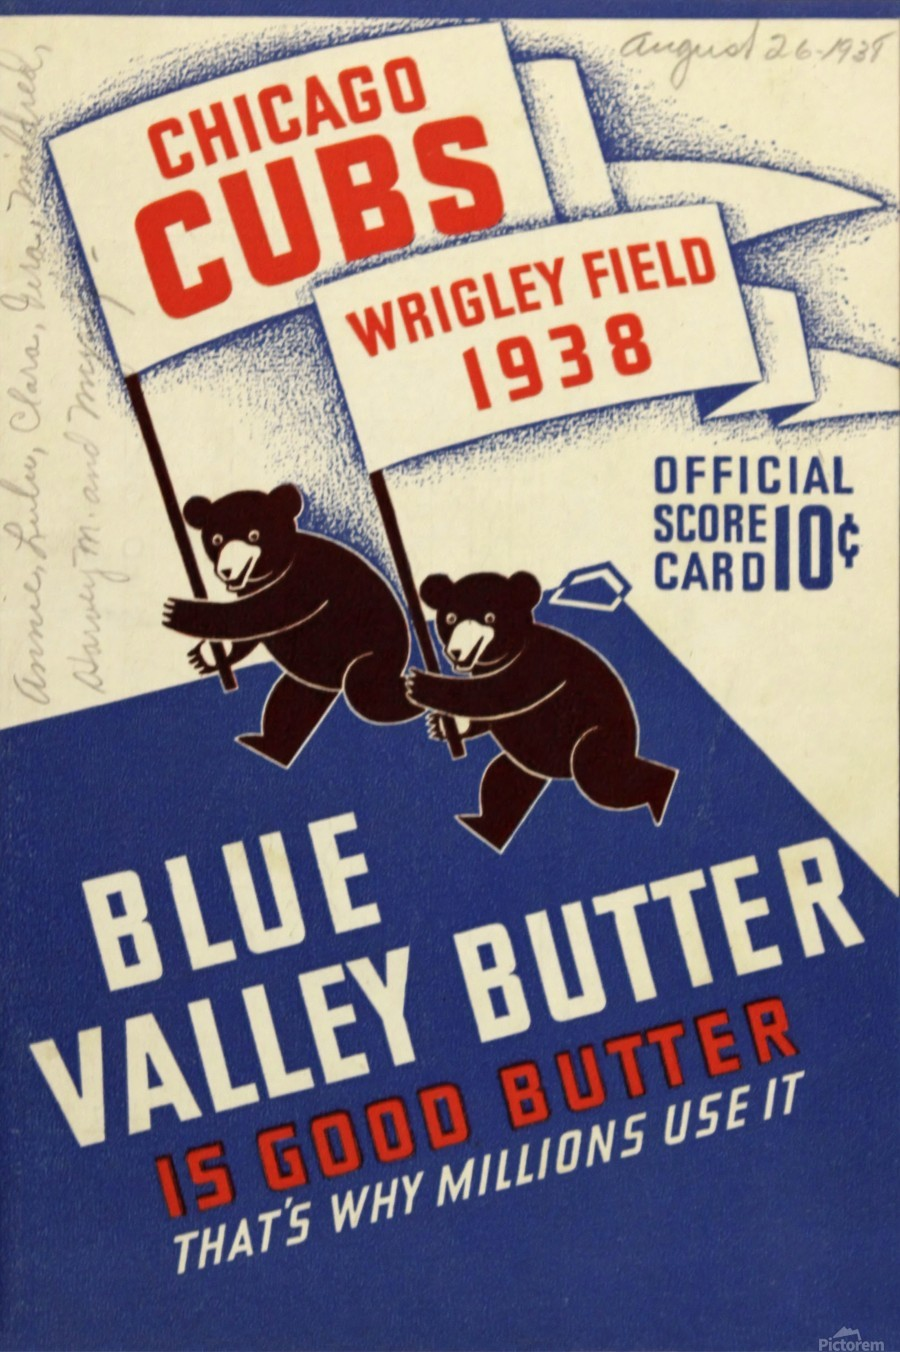 1938 Chicago Cubs Program Cover  Print